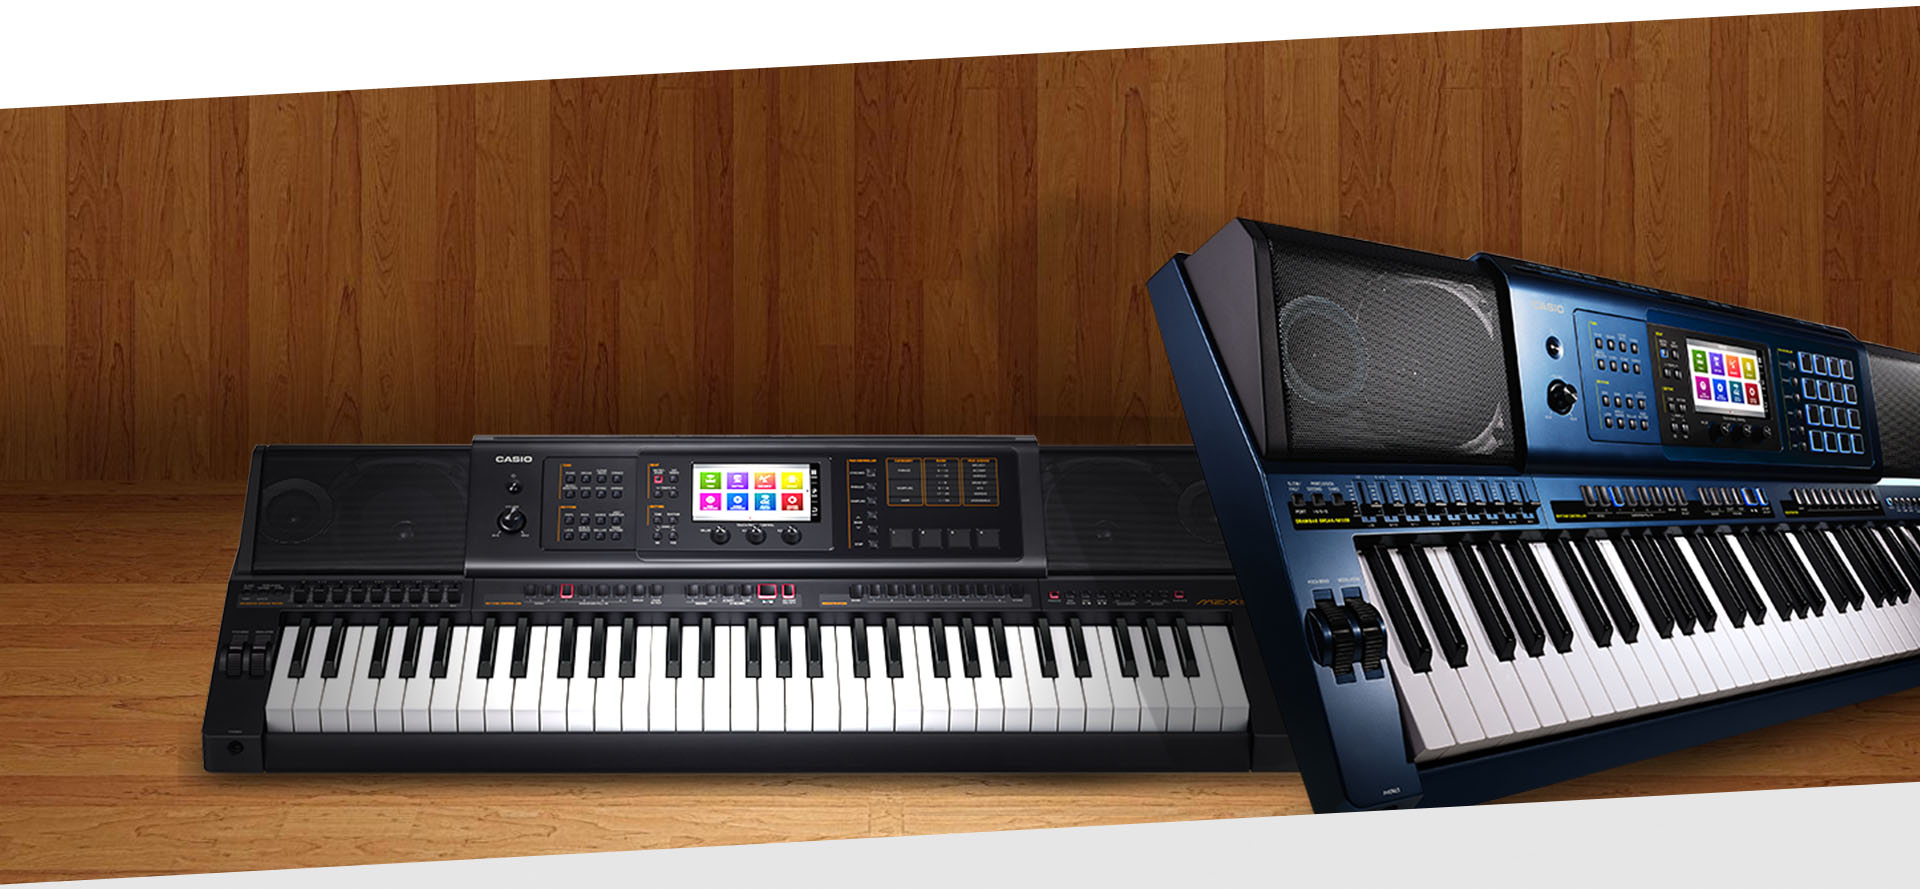 MZ-X Series - The evolutionary successor to Casio's powerful MZ-2000 Series instruments.